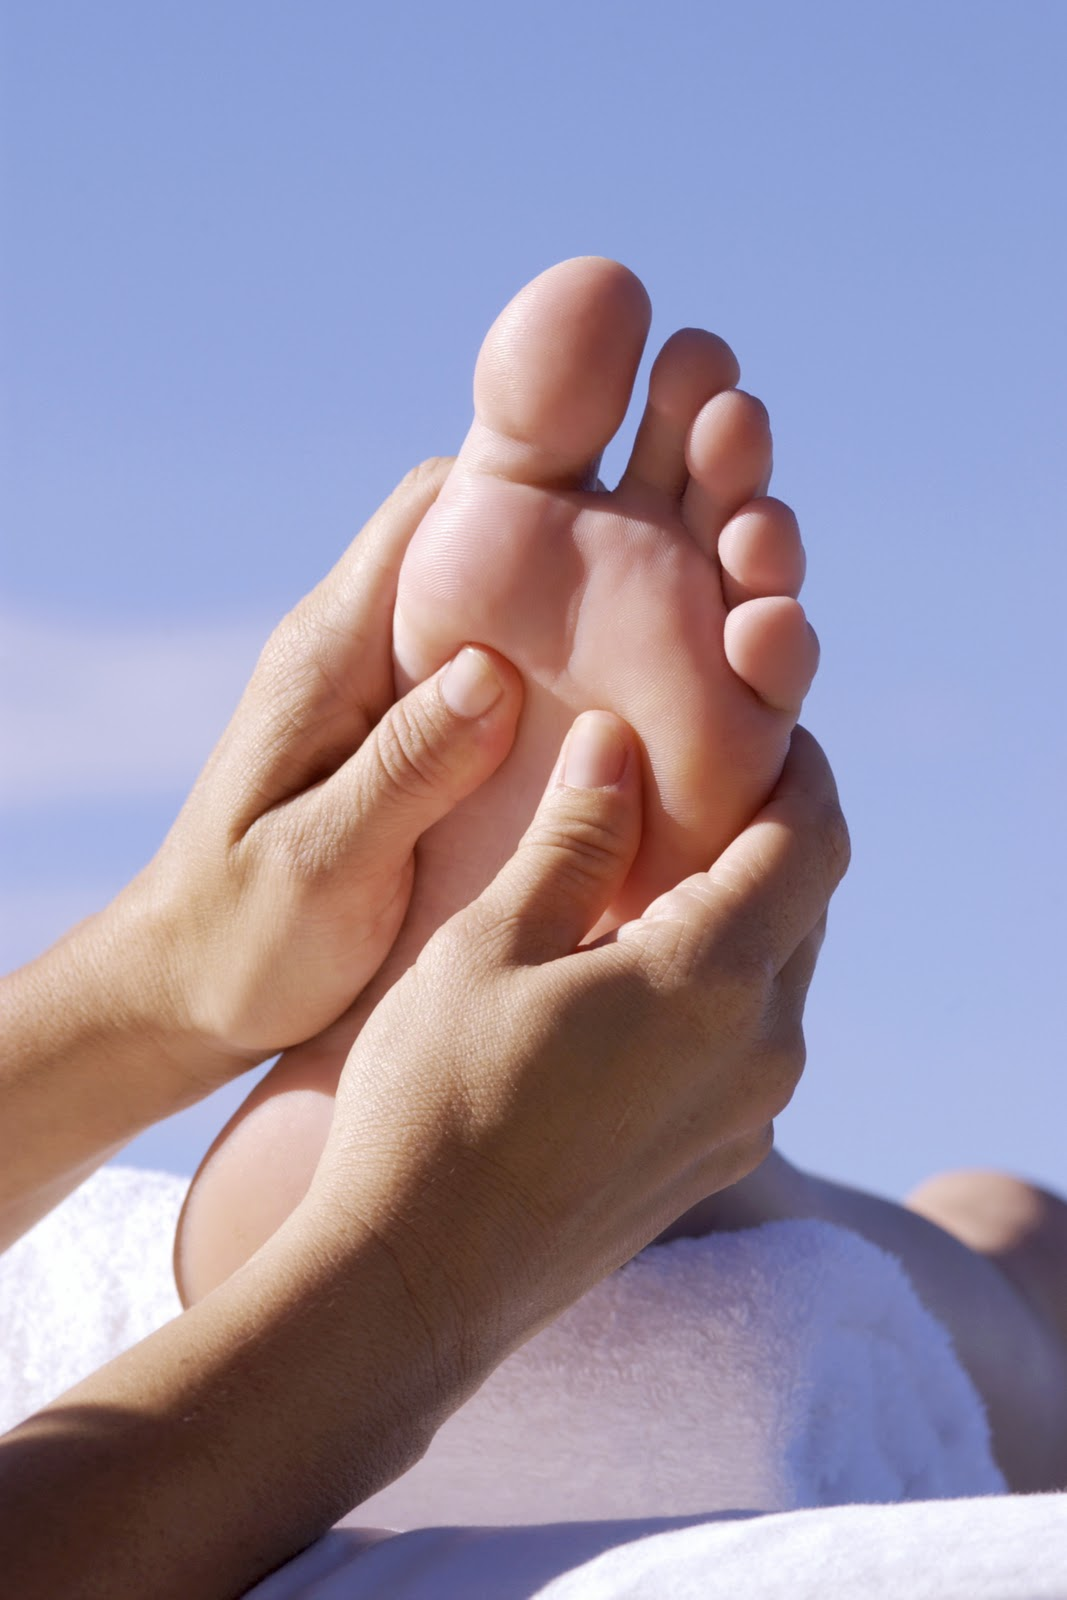 Easy Foot Massage Techniques To Stimulate Weight Loss ... |Foot Massage